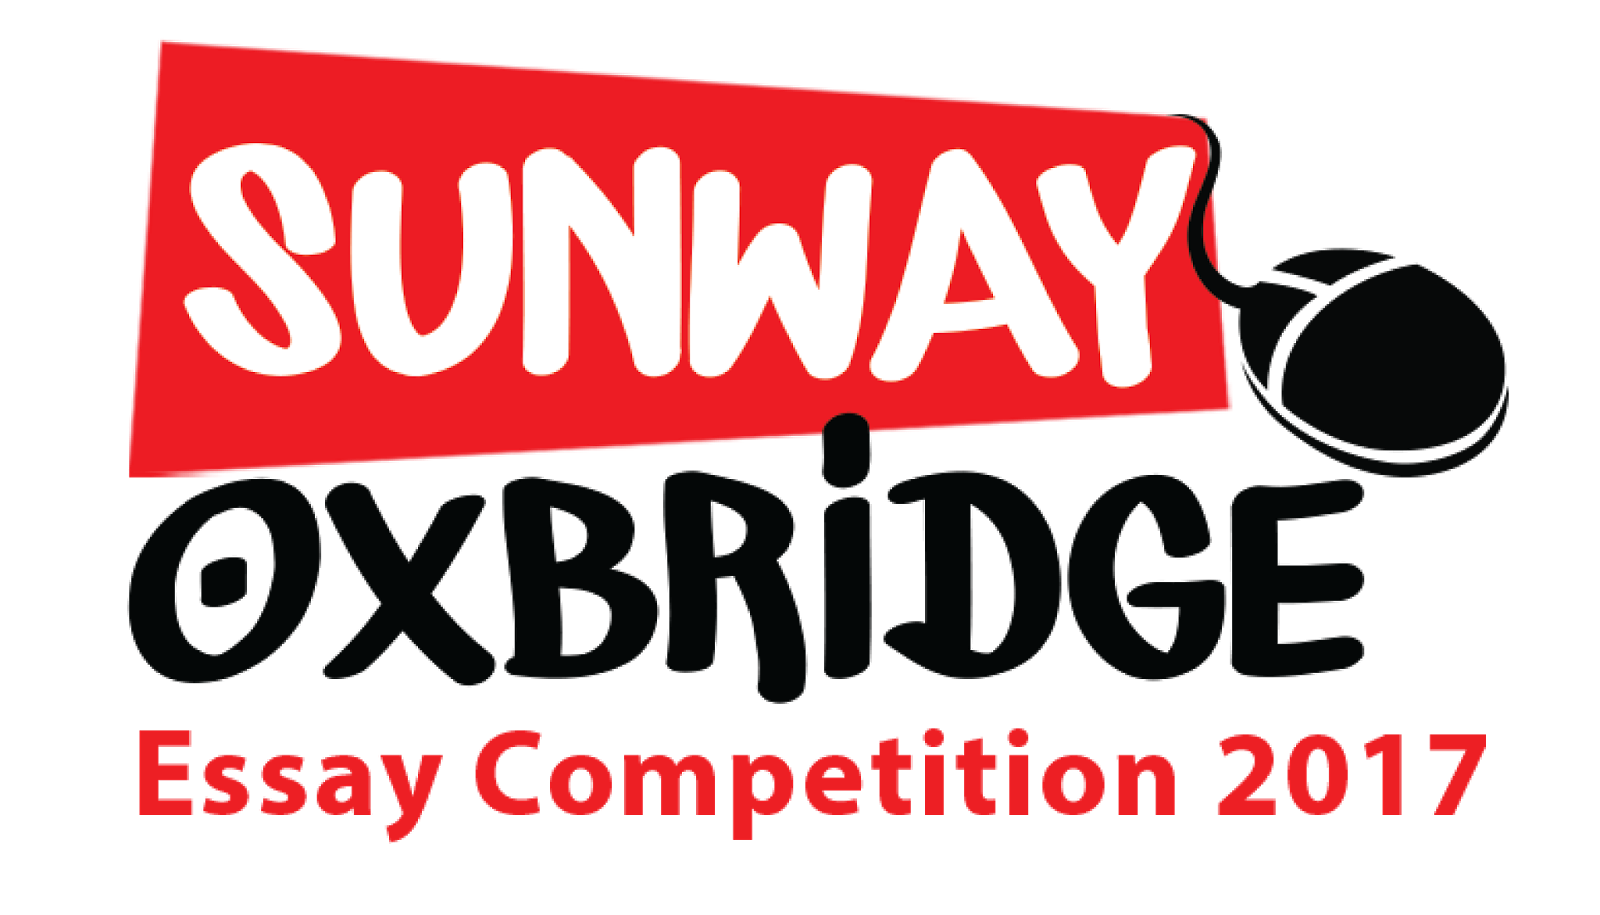 sunway oxbridge essay competition to champion climate action sunway oxbridge essay competition